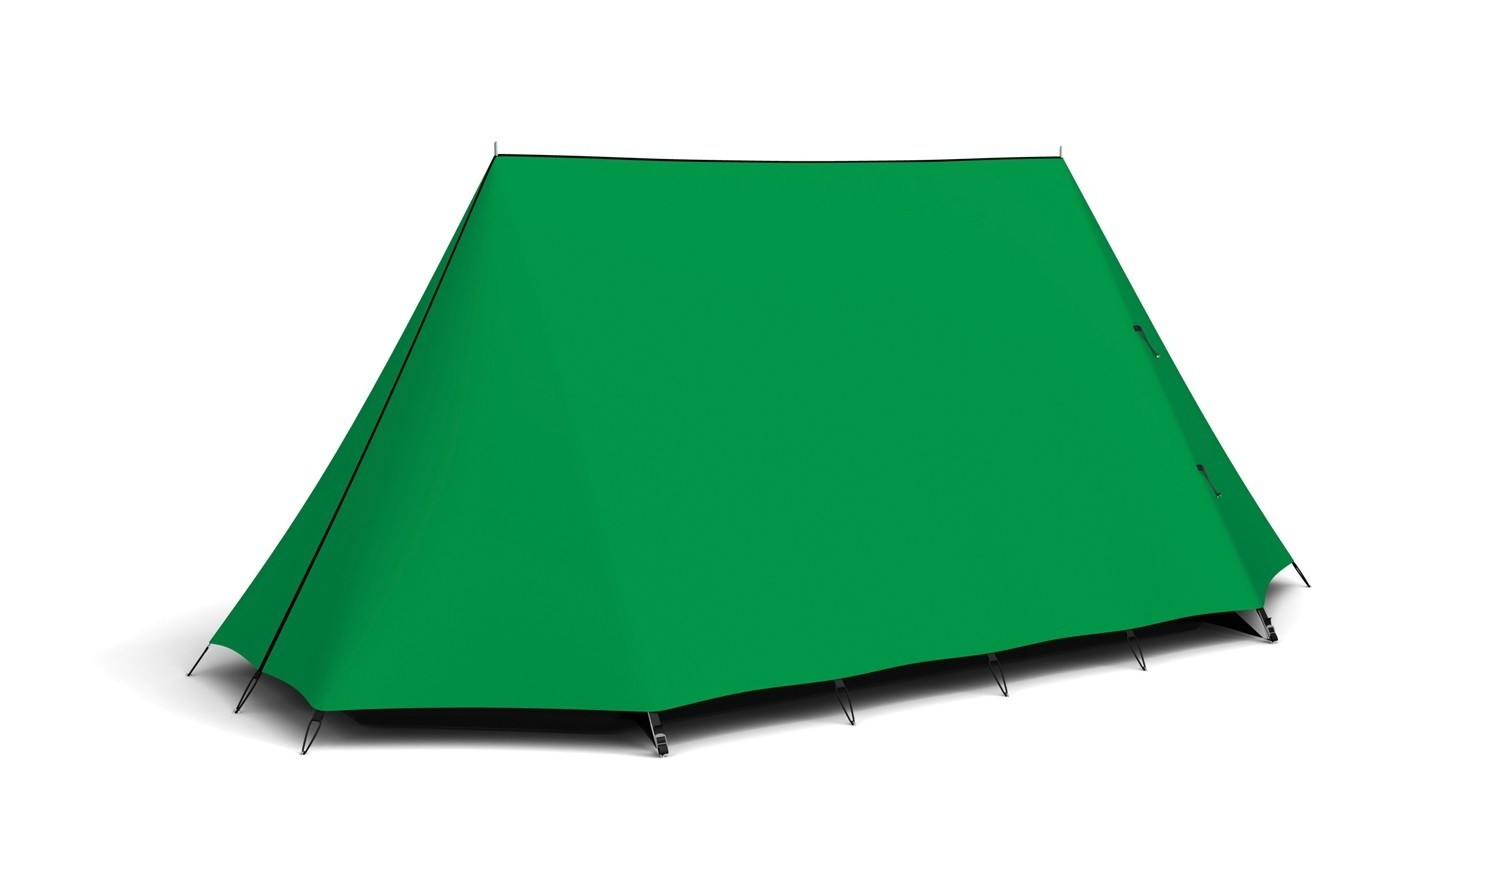 Mean Green Tent